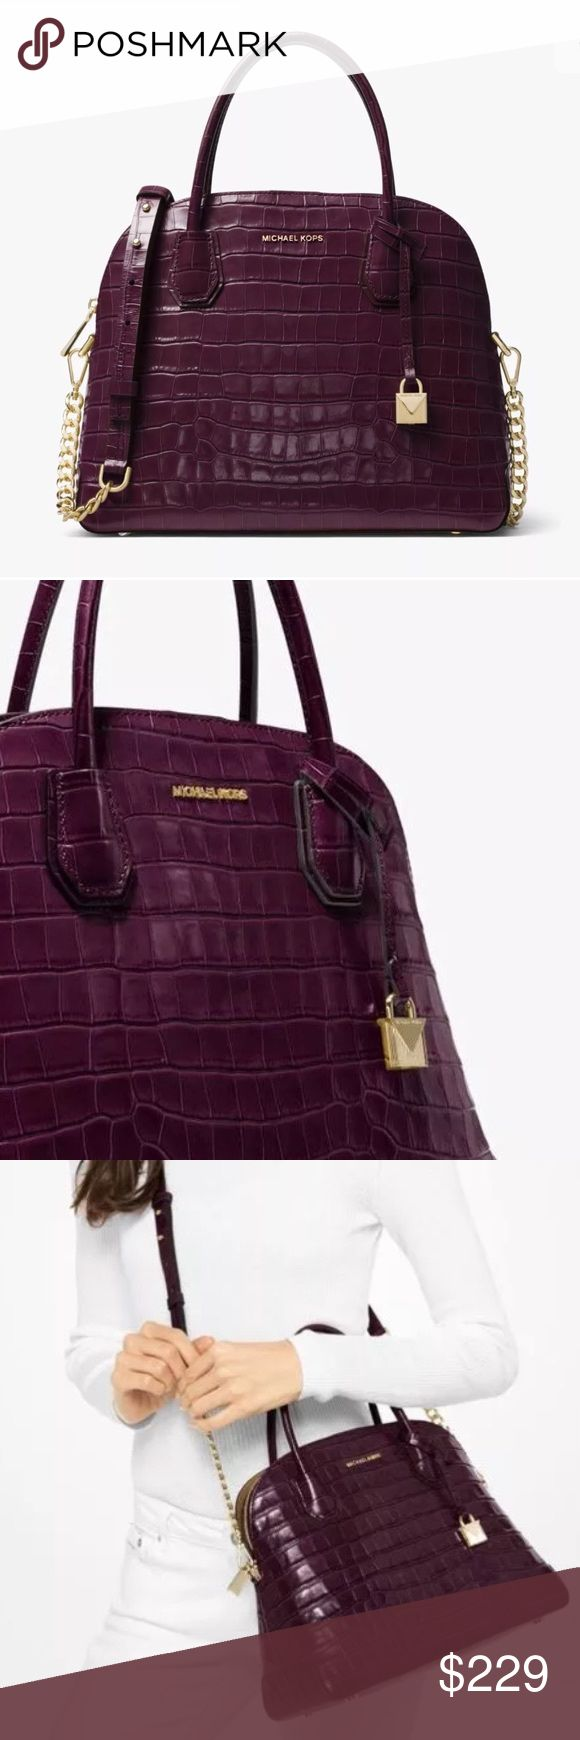 "Michael Kors Mercer Large Damson Leather Handbag 100% Authentic Michael Kors!  Buy with confidence!  Features: • 100% genuine Leather • Vlossy crocodile embossed leather, zip top fastening, gold-tone hardware, top handles • 4.5"" drop detachable • One zip and three open slip multifunction pockets, exterior two magnetic snap compartments, fabric lined interior, sleek new lock charm • 11.5"" bottom widest (L)/ 9.6"" center (H)/ 5""(W) bottom • Comes with dust bag  Please feel free to ask any…"